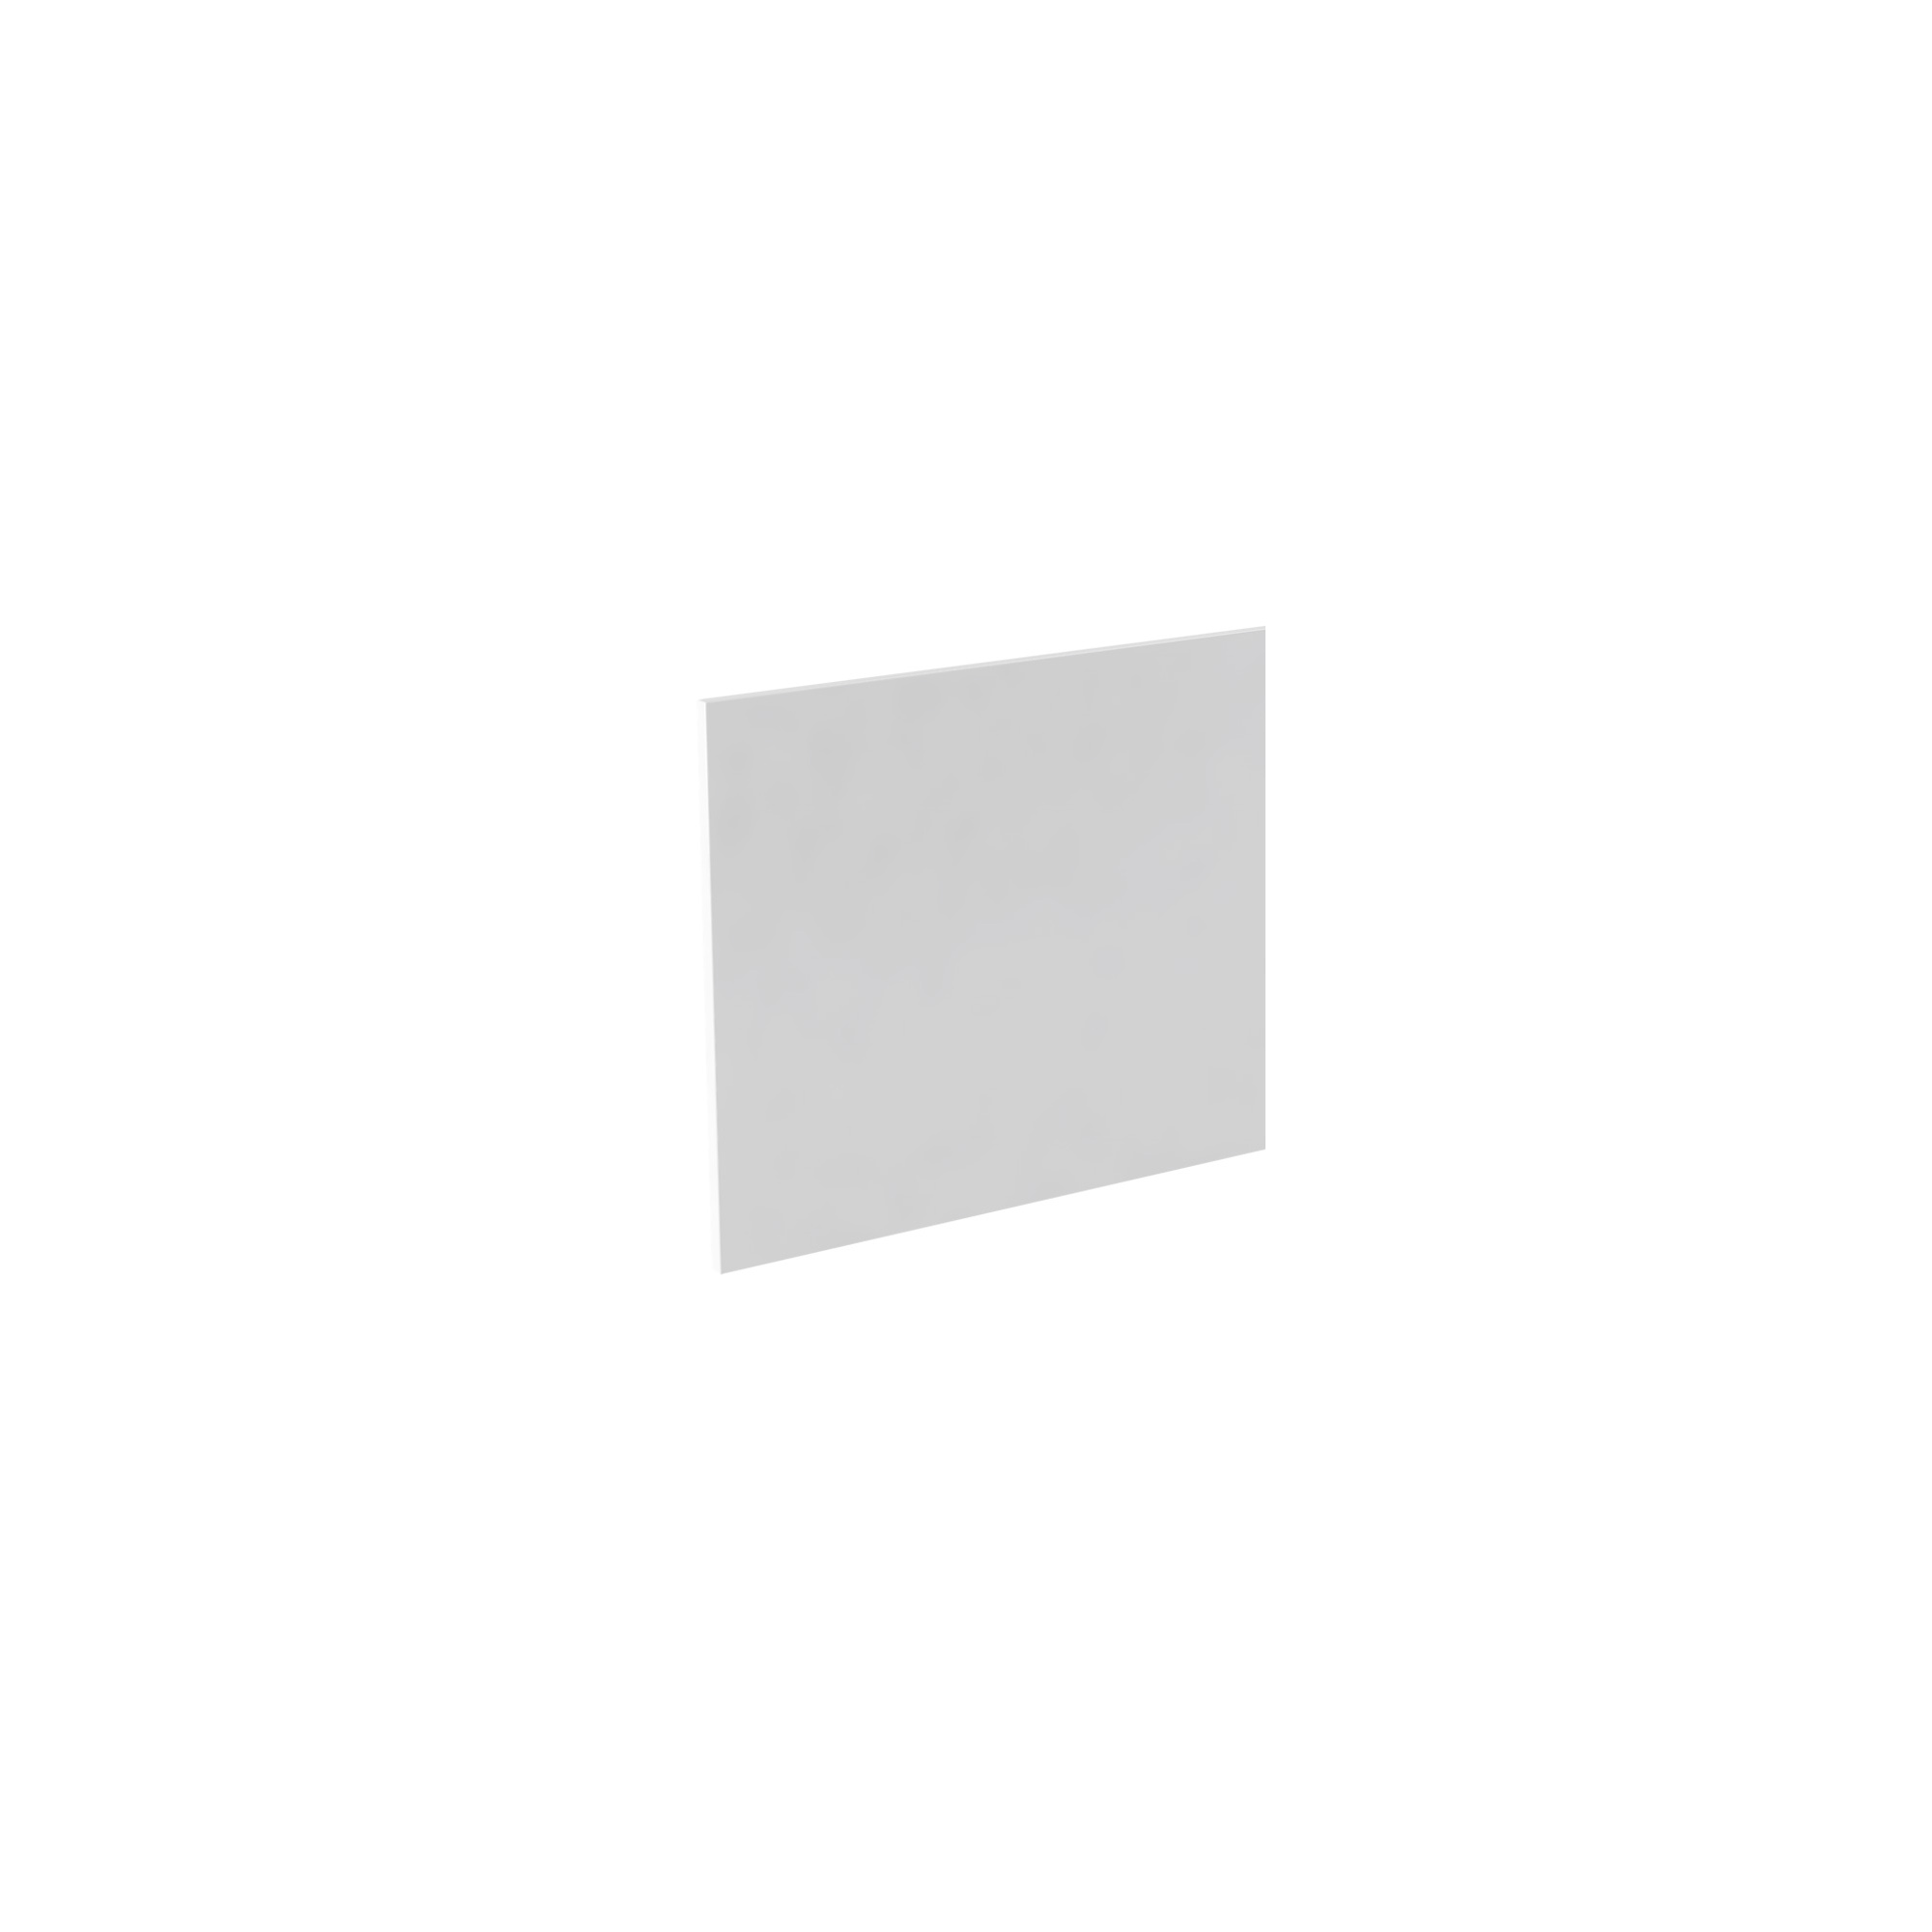 K-Vit Ikon 800mm Bath Panel - White